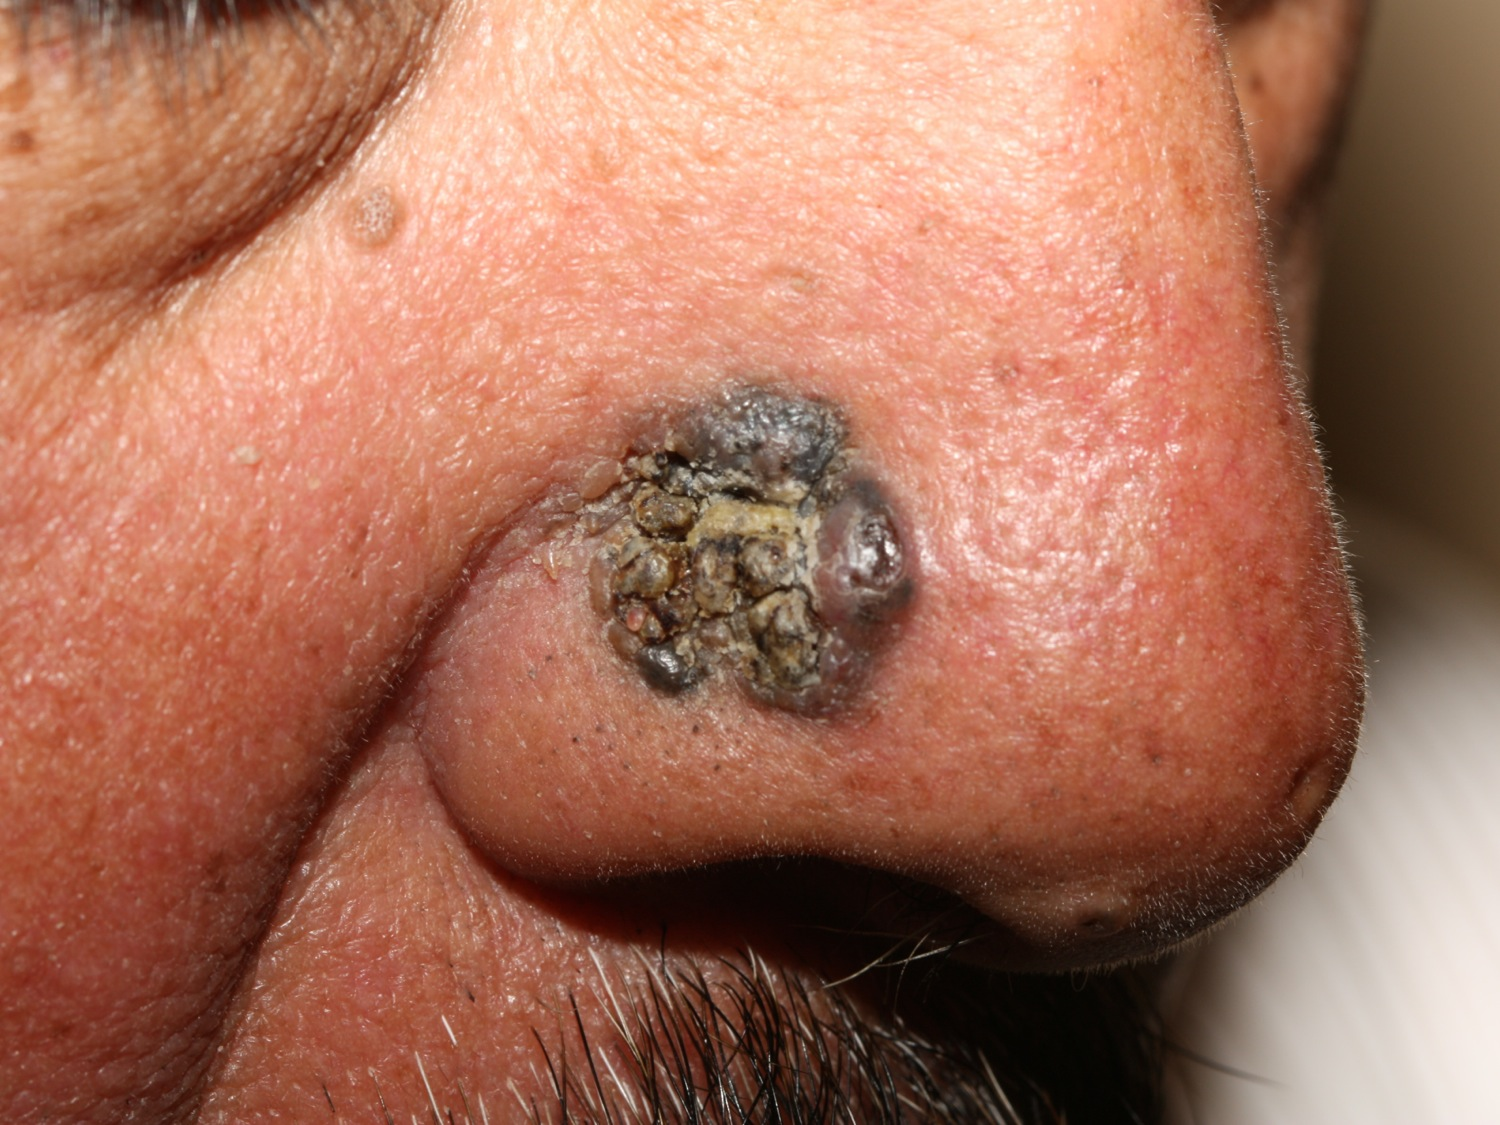 Basal cell carcinoma nose - pigmented